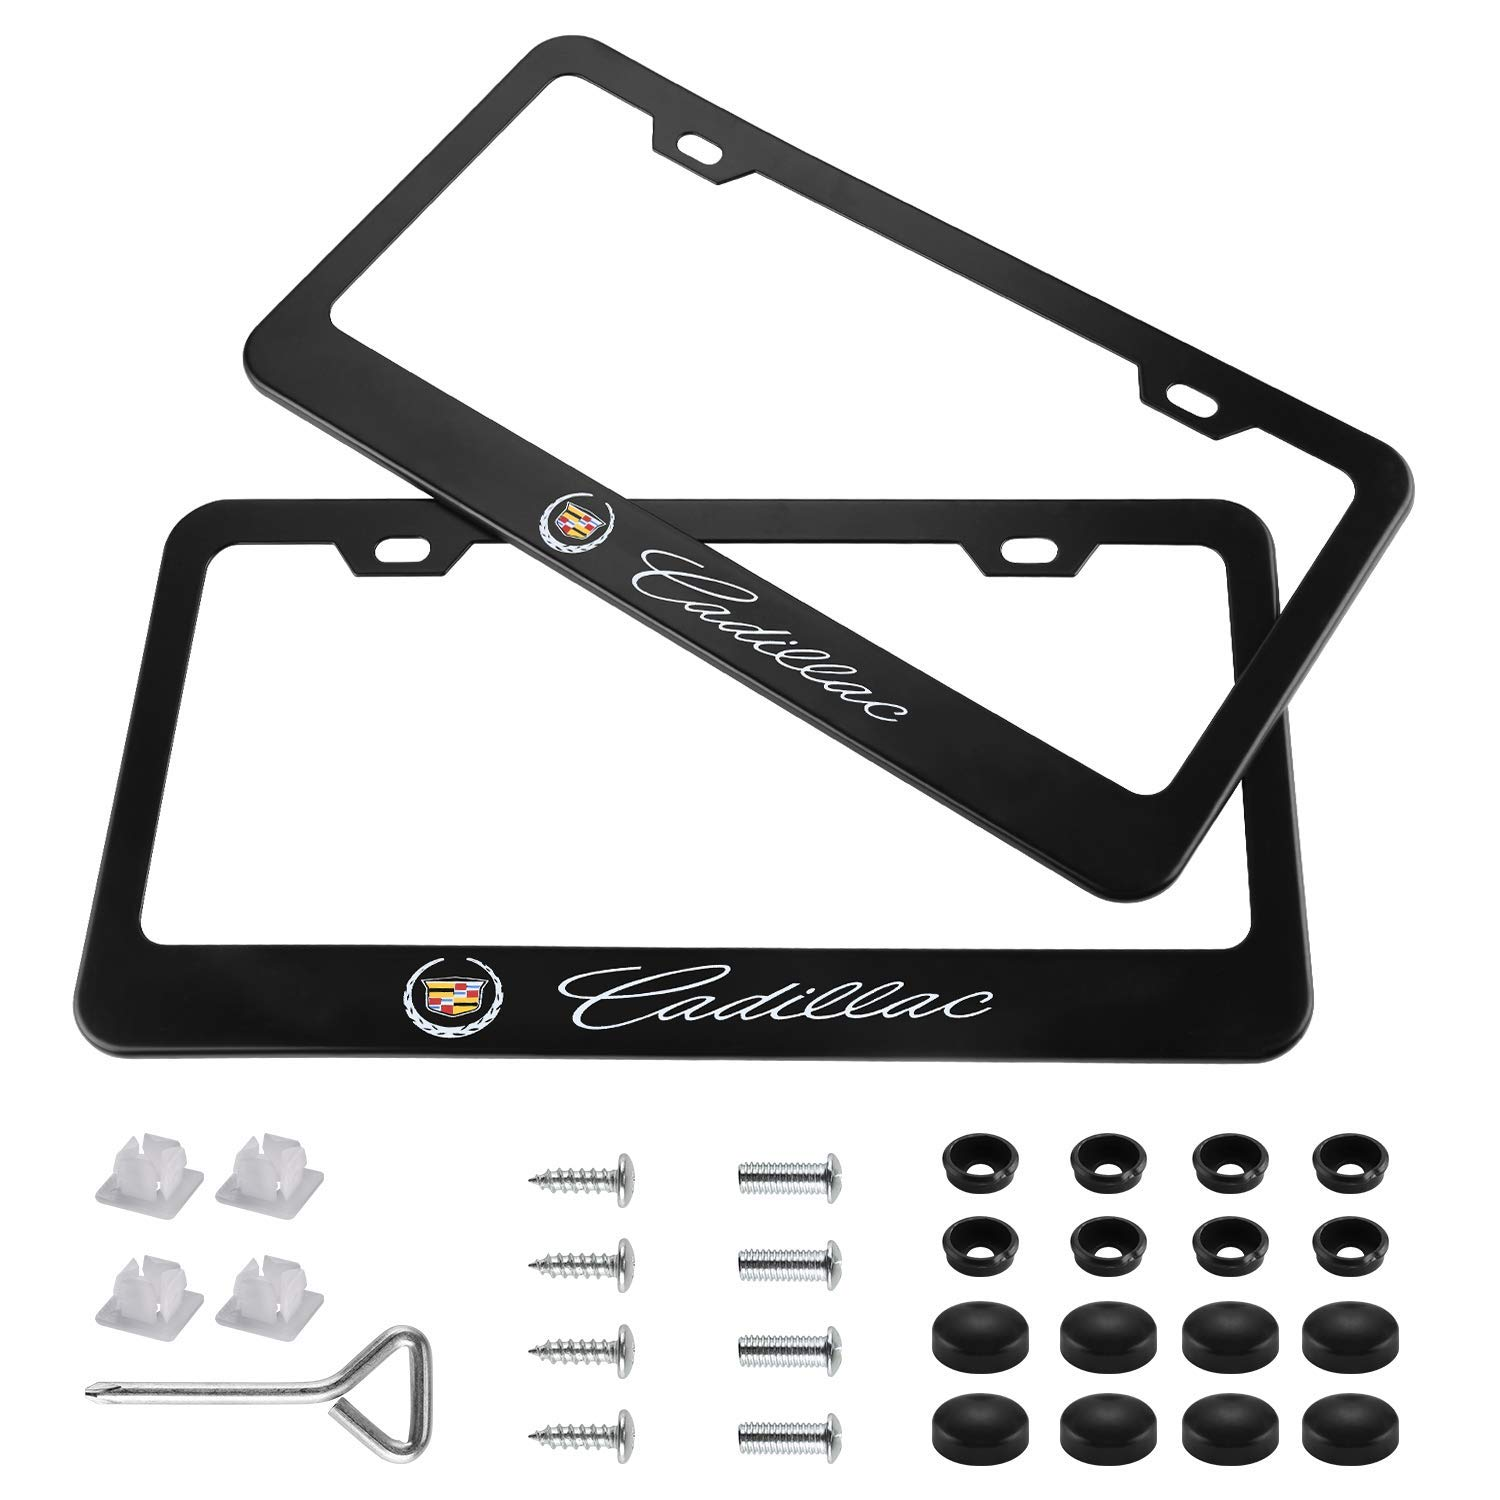 3D CADILLAC Front Black Stainless Steel License Plate Frame AUTHENTIC w// Caps